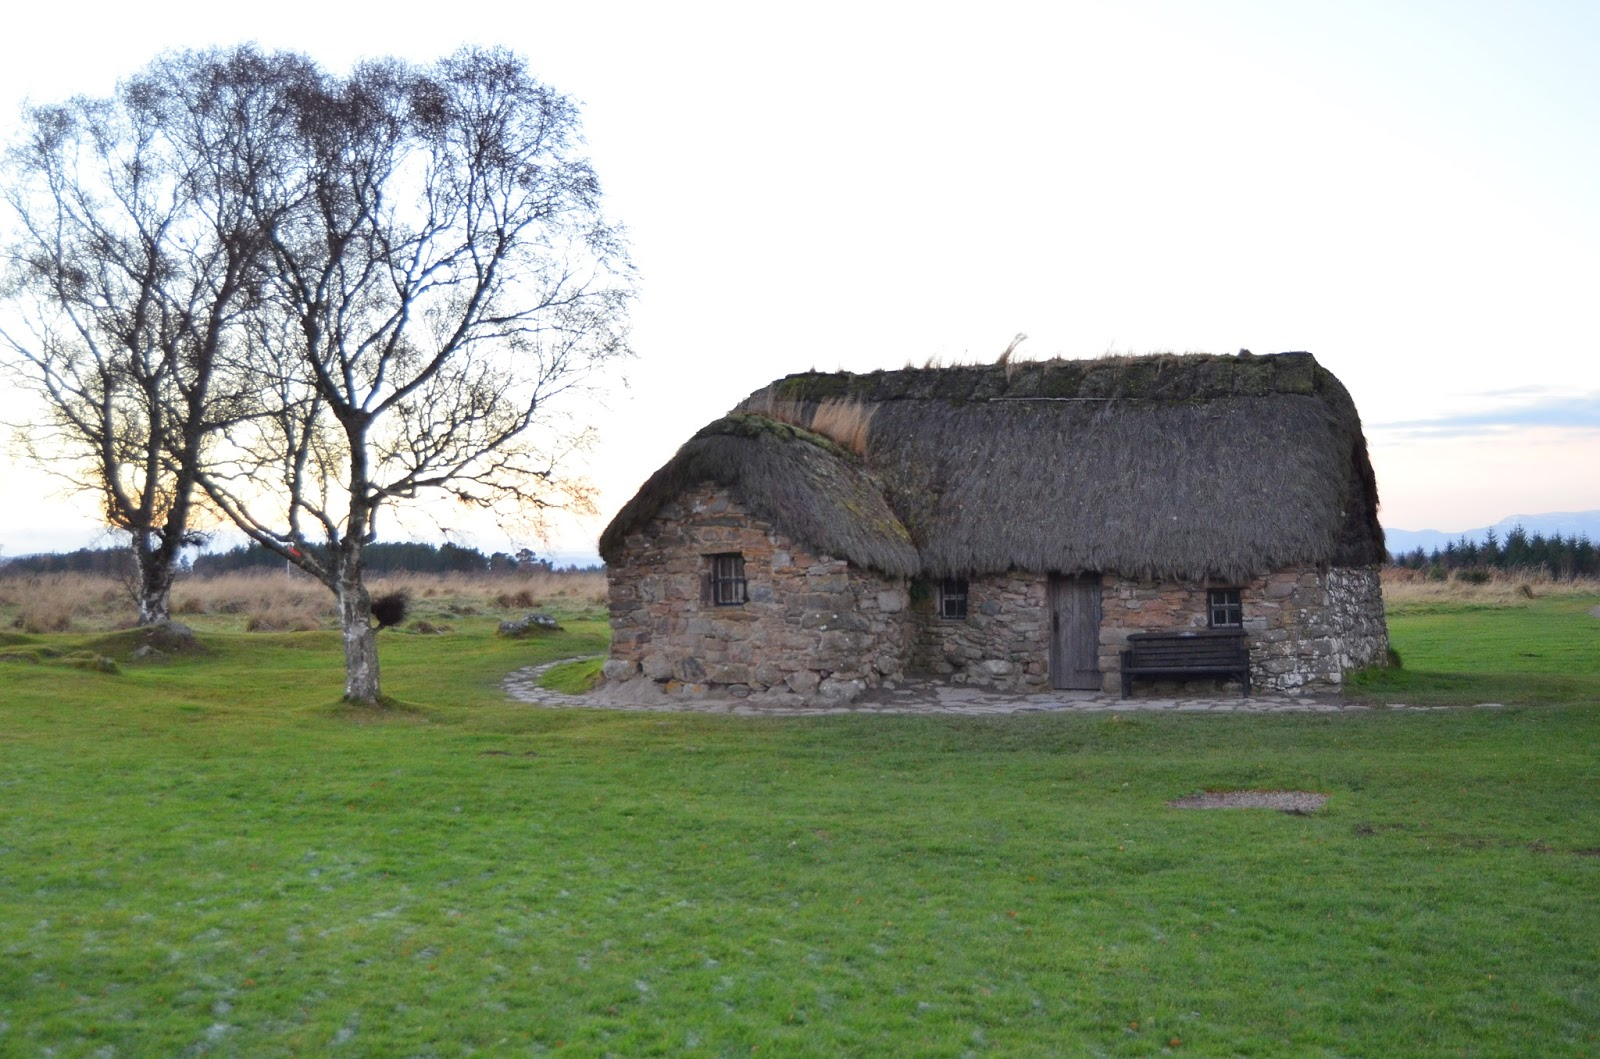 Culloden Scotland Jacobite Rebellion Old Leanach Cottage Culloden Battlefield Outlander Season 3